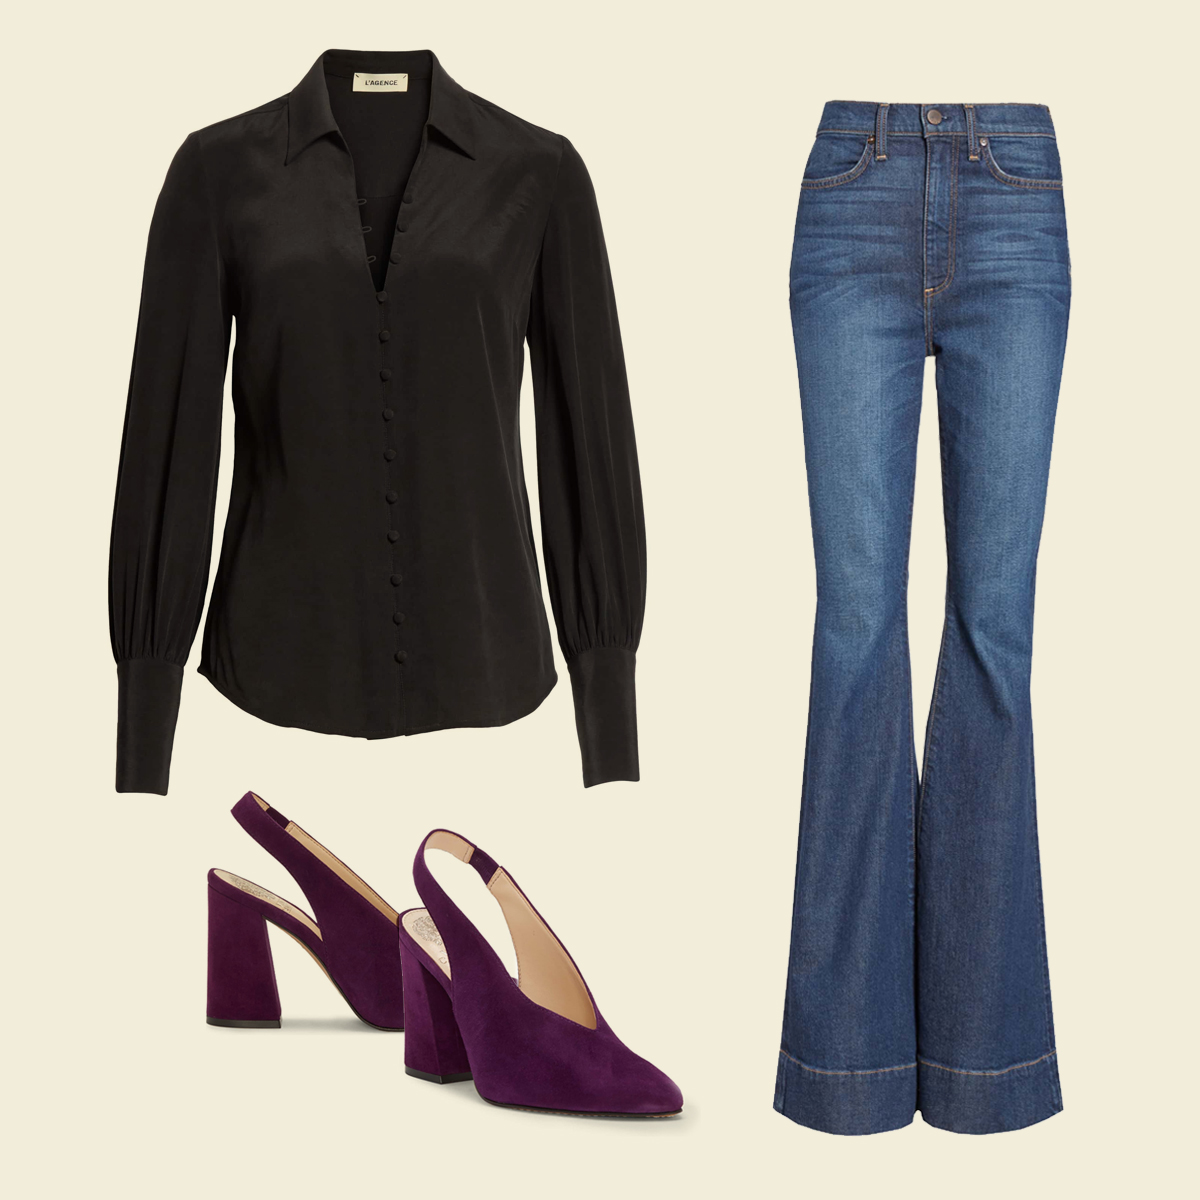 Bell-bottom jeans, black blouse, and statement boots.